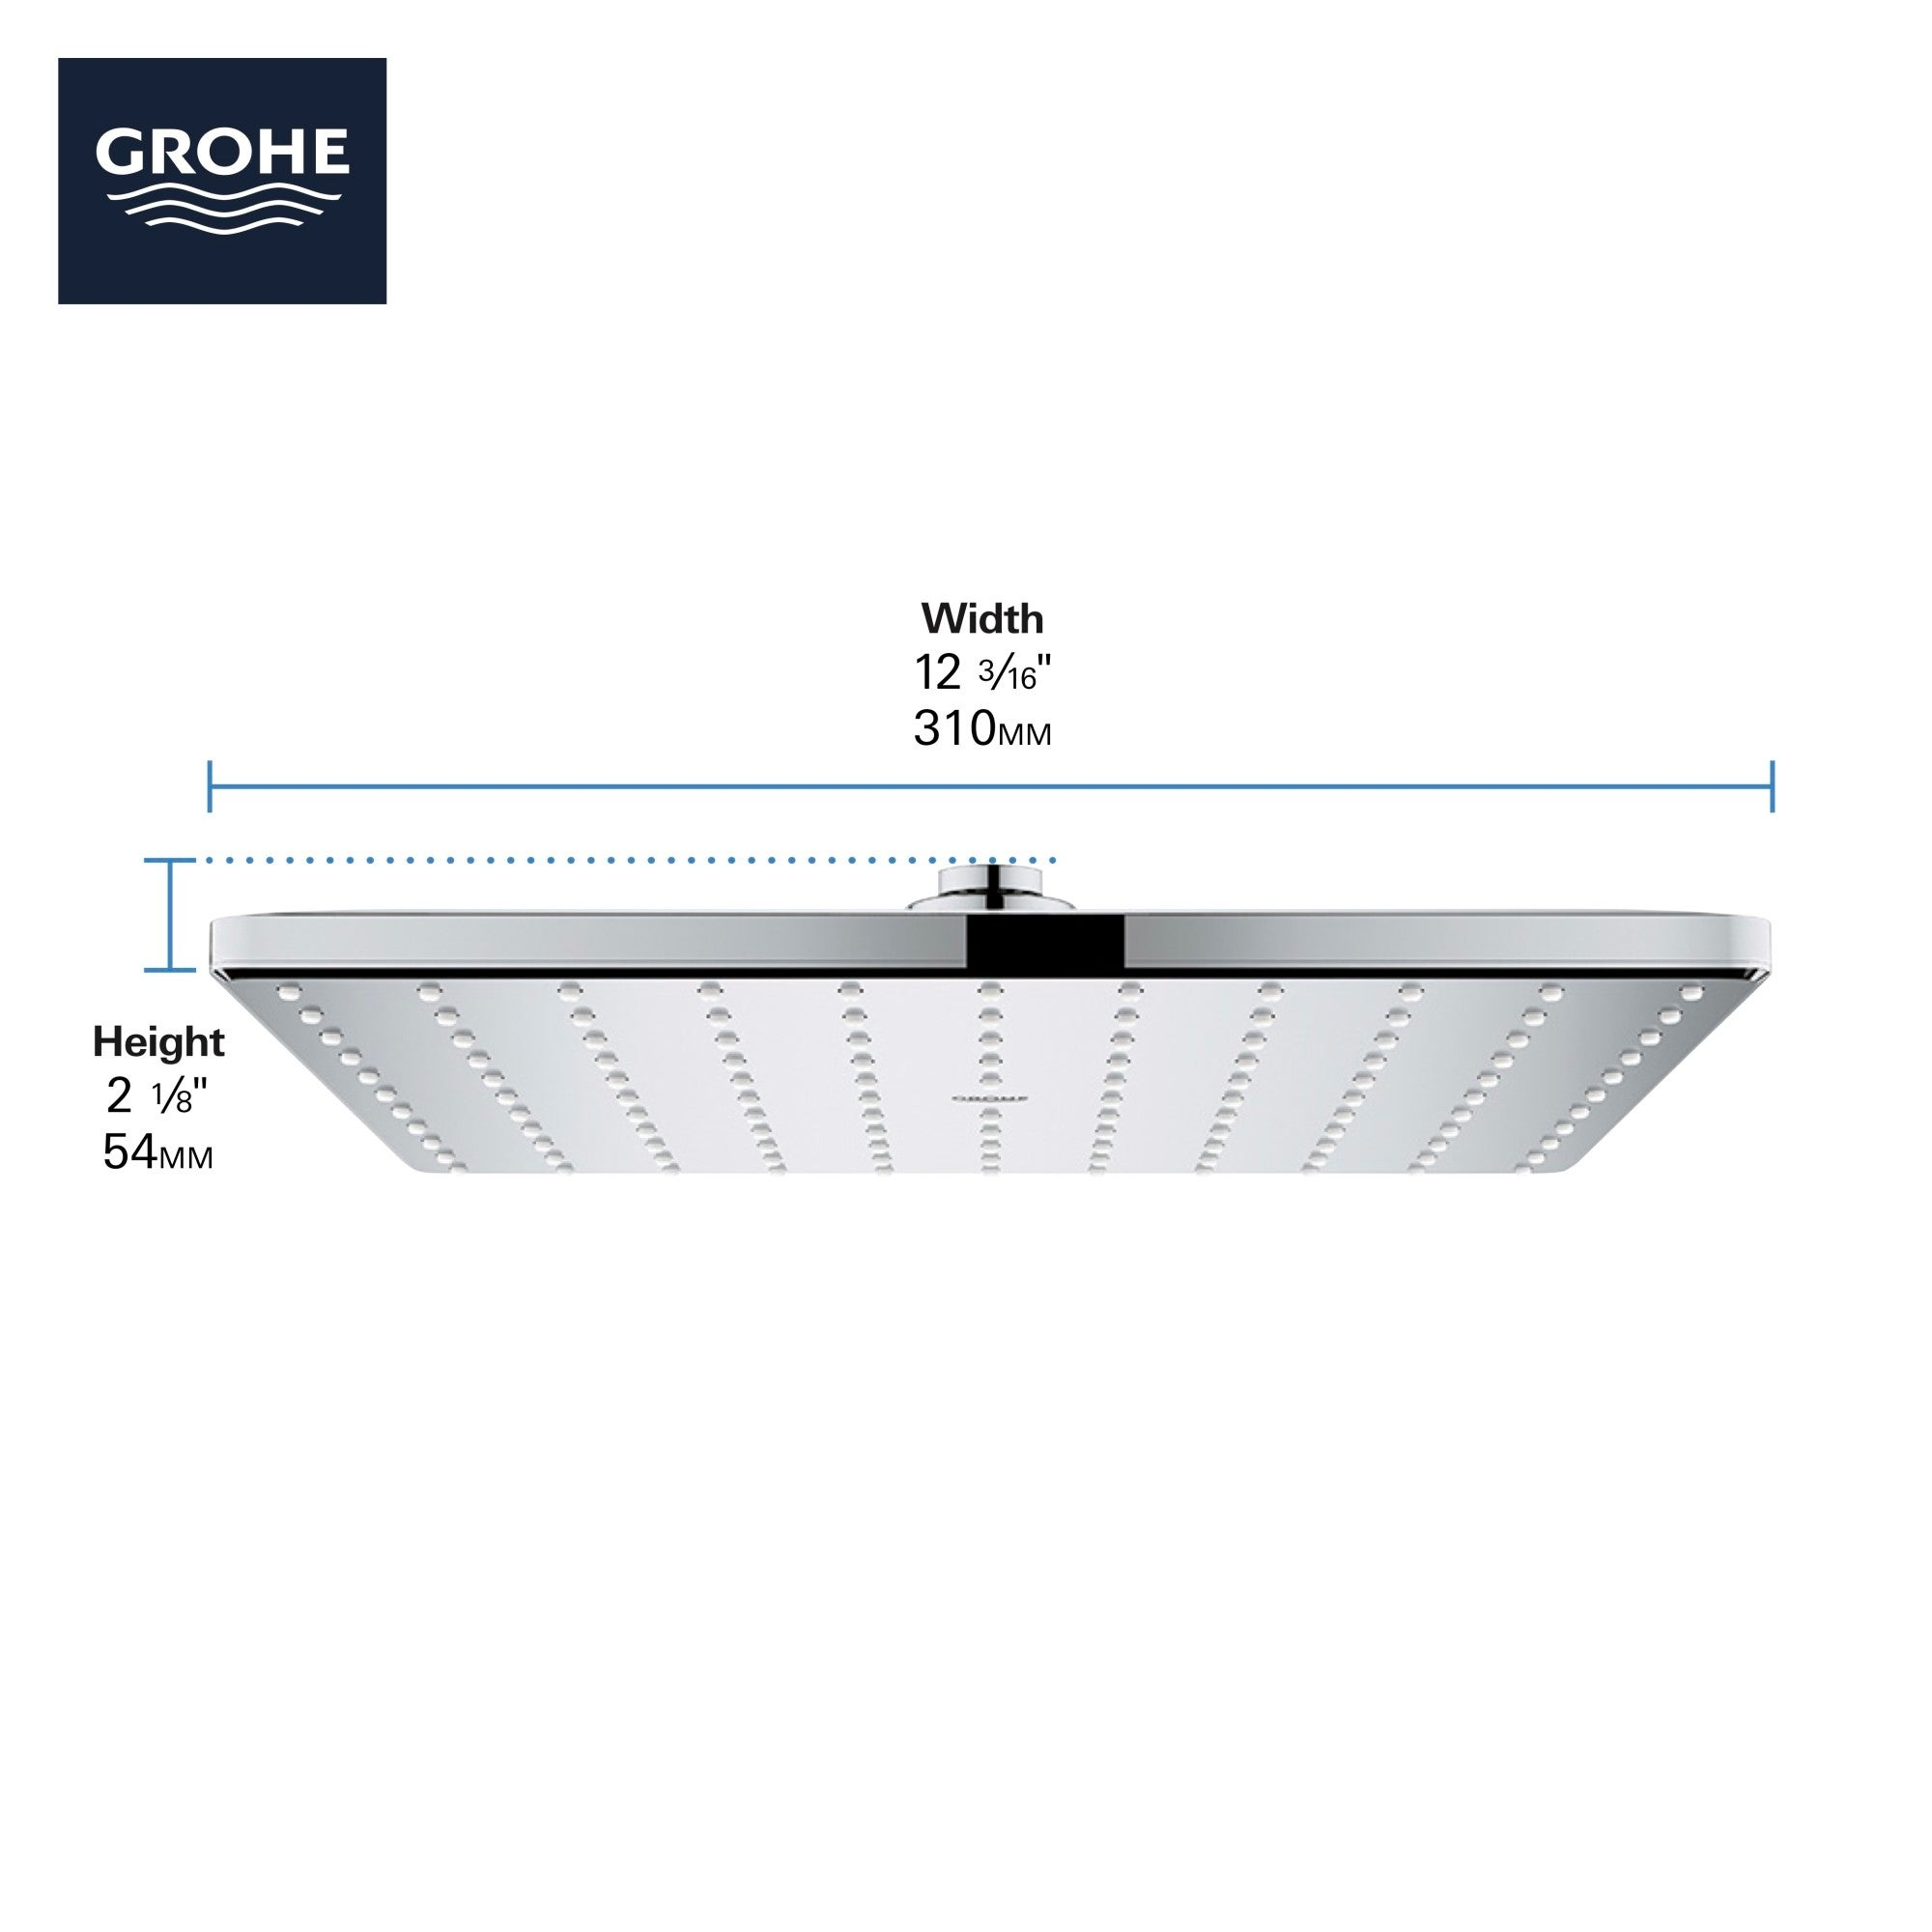 Grohe 26 570 Rainshower Mono 1 75 Gpm Single Function Shower Head With Dreamspray Speedclean And Ecojoy Technology